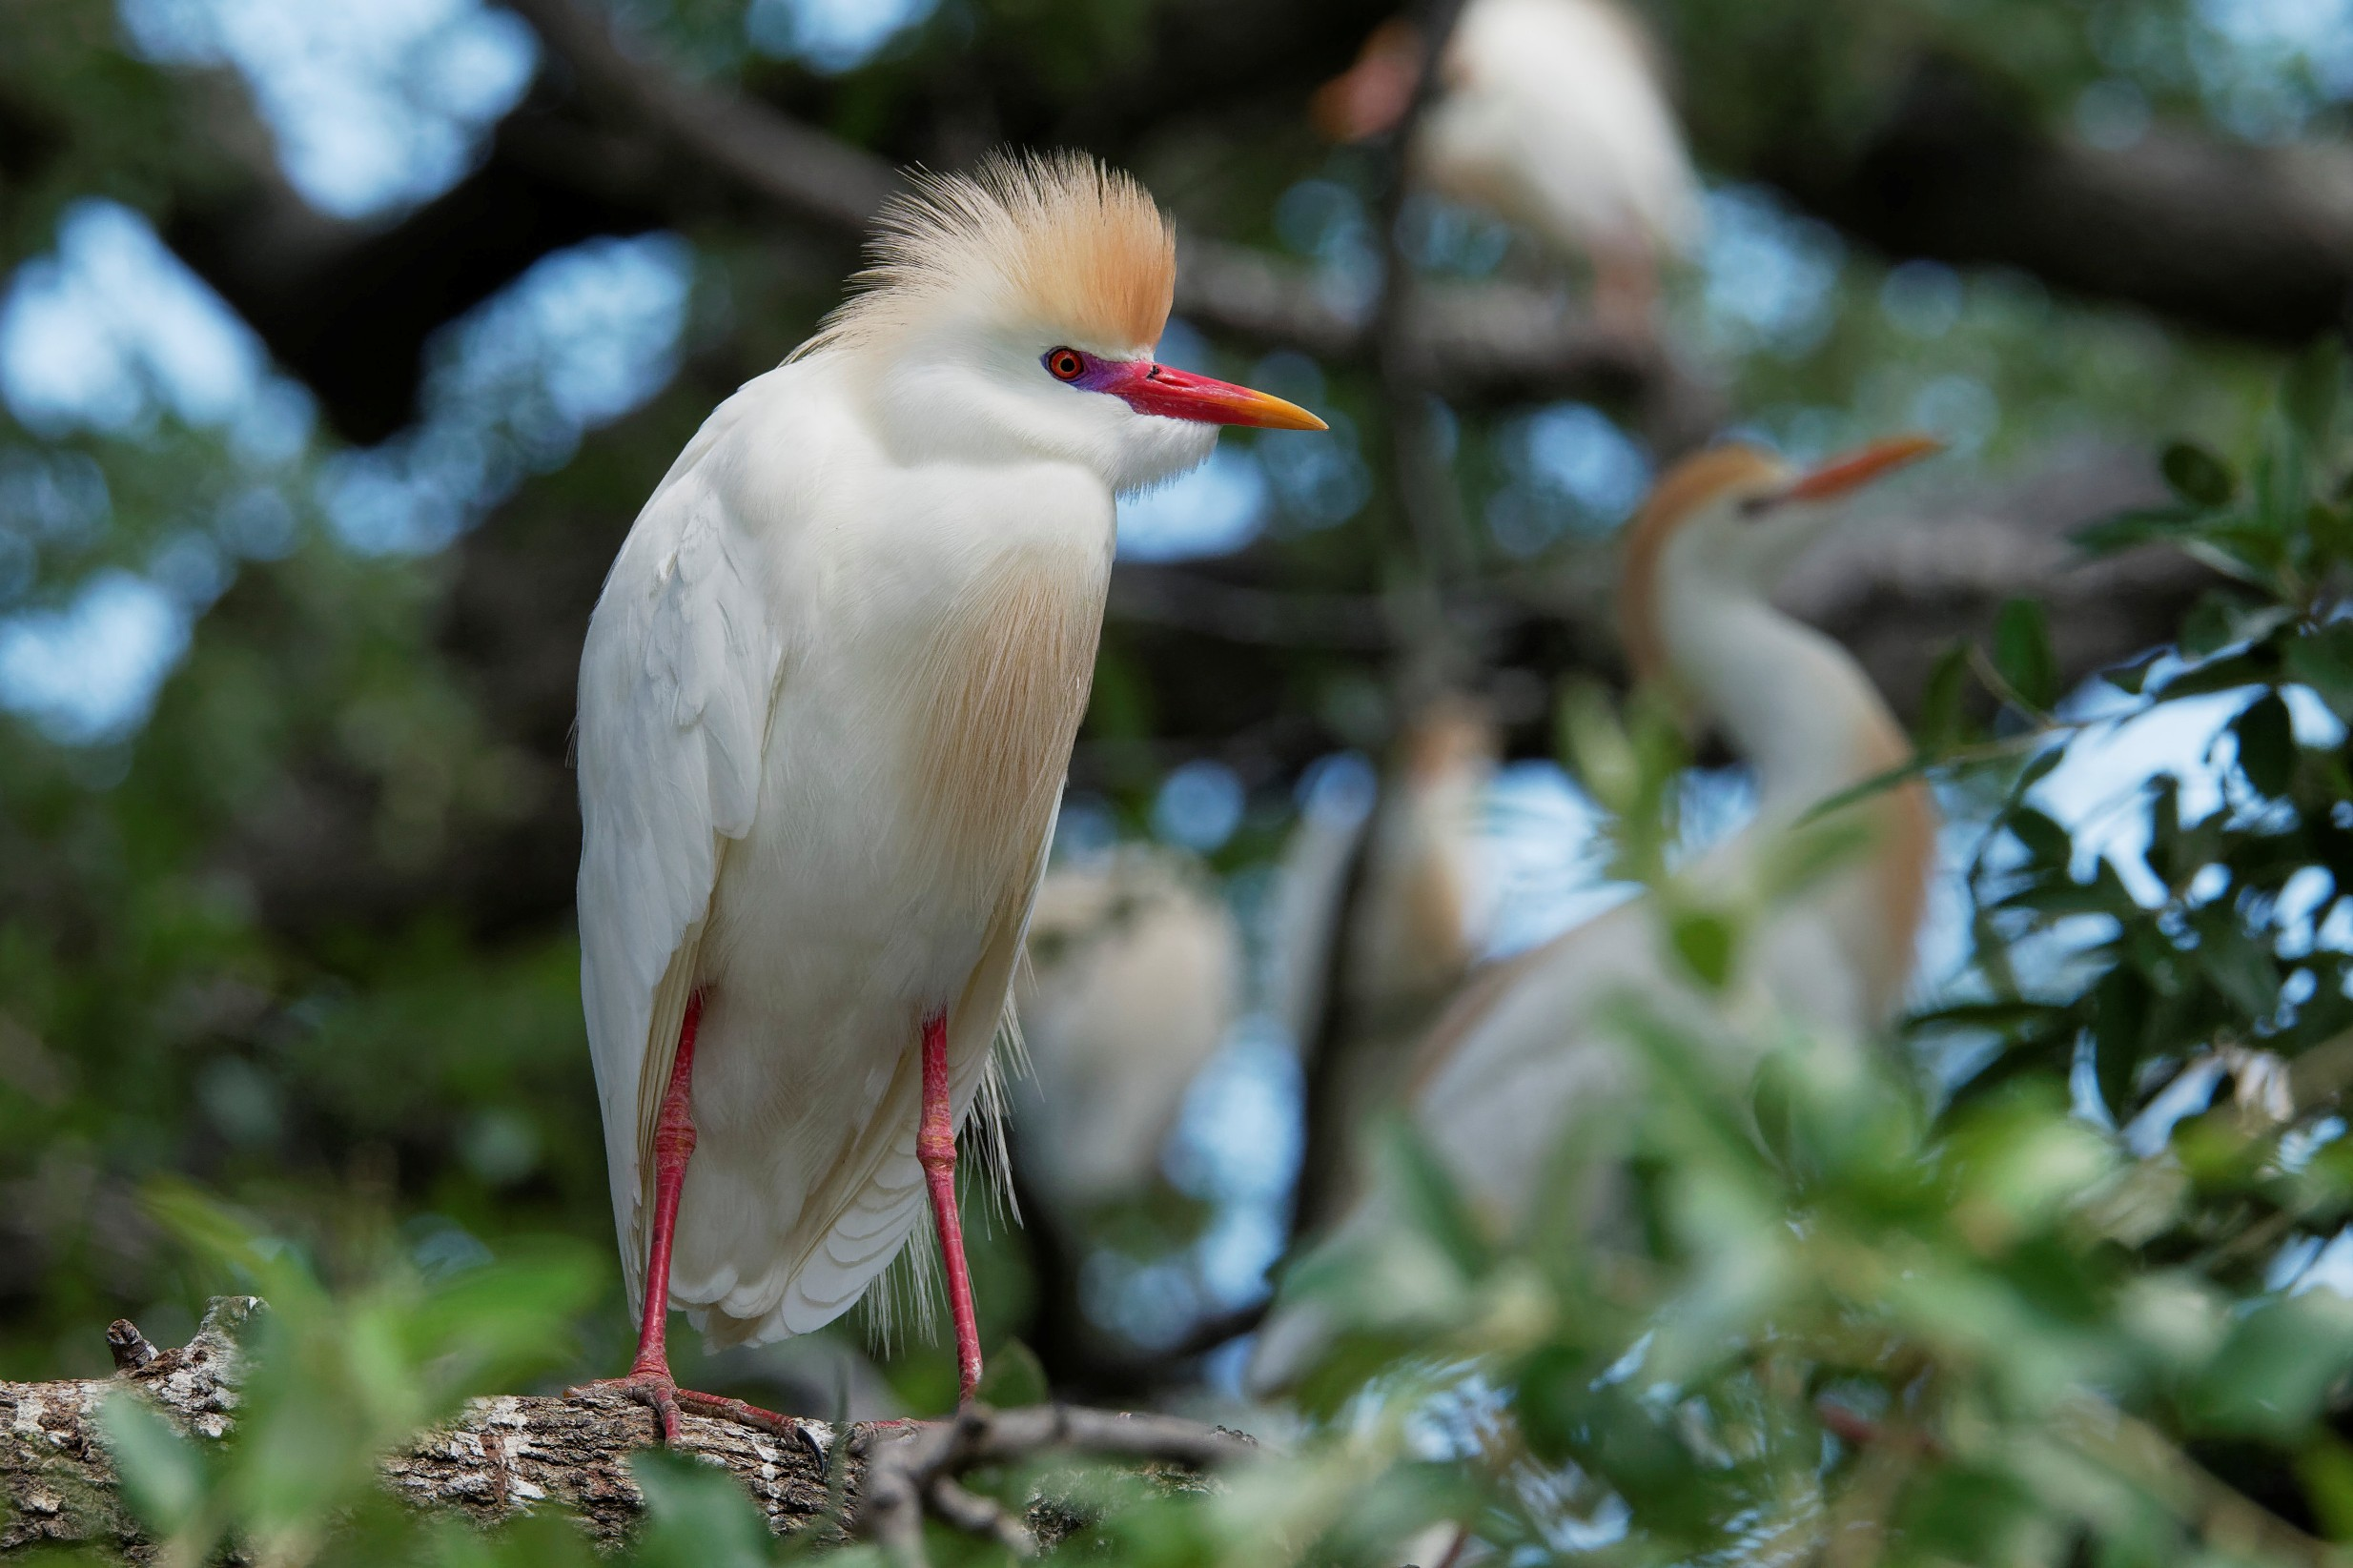 Species: Cattle Egret Photo Credit: Dina Perry Date: May 2018 Location: Brackenridge Park